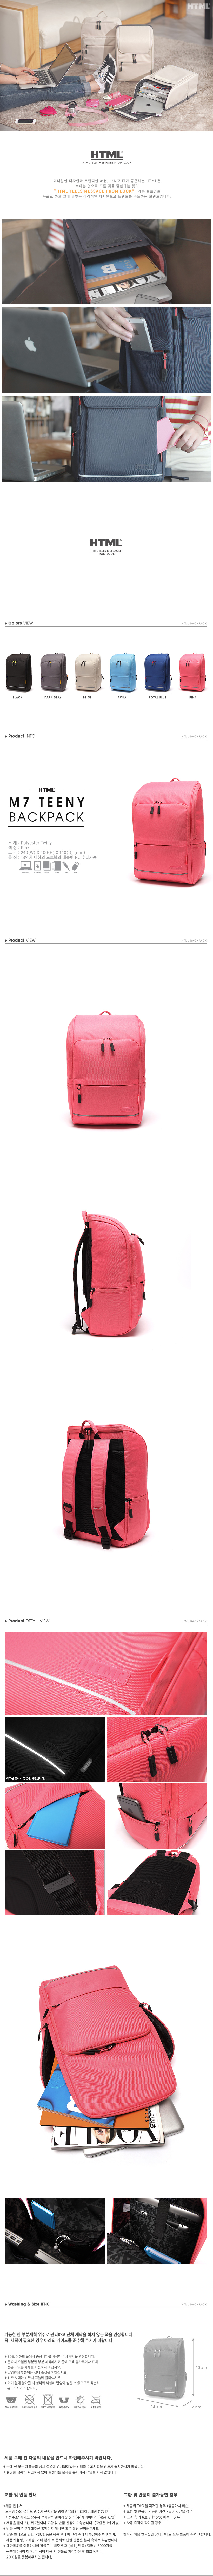 [에이치티엠엘]HTML-M7 WOMAN TEENY (2015) Backpack (PINK) 티니 백팩